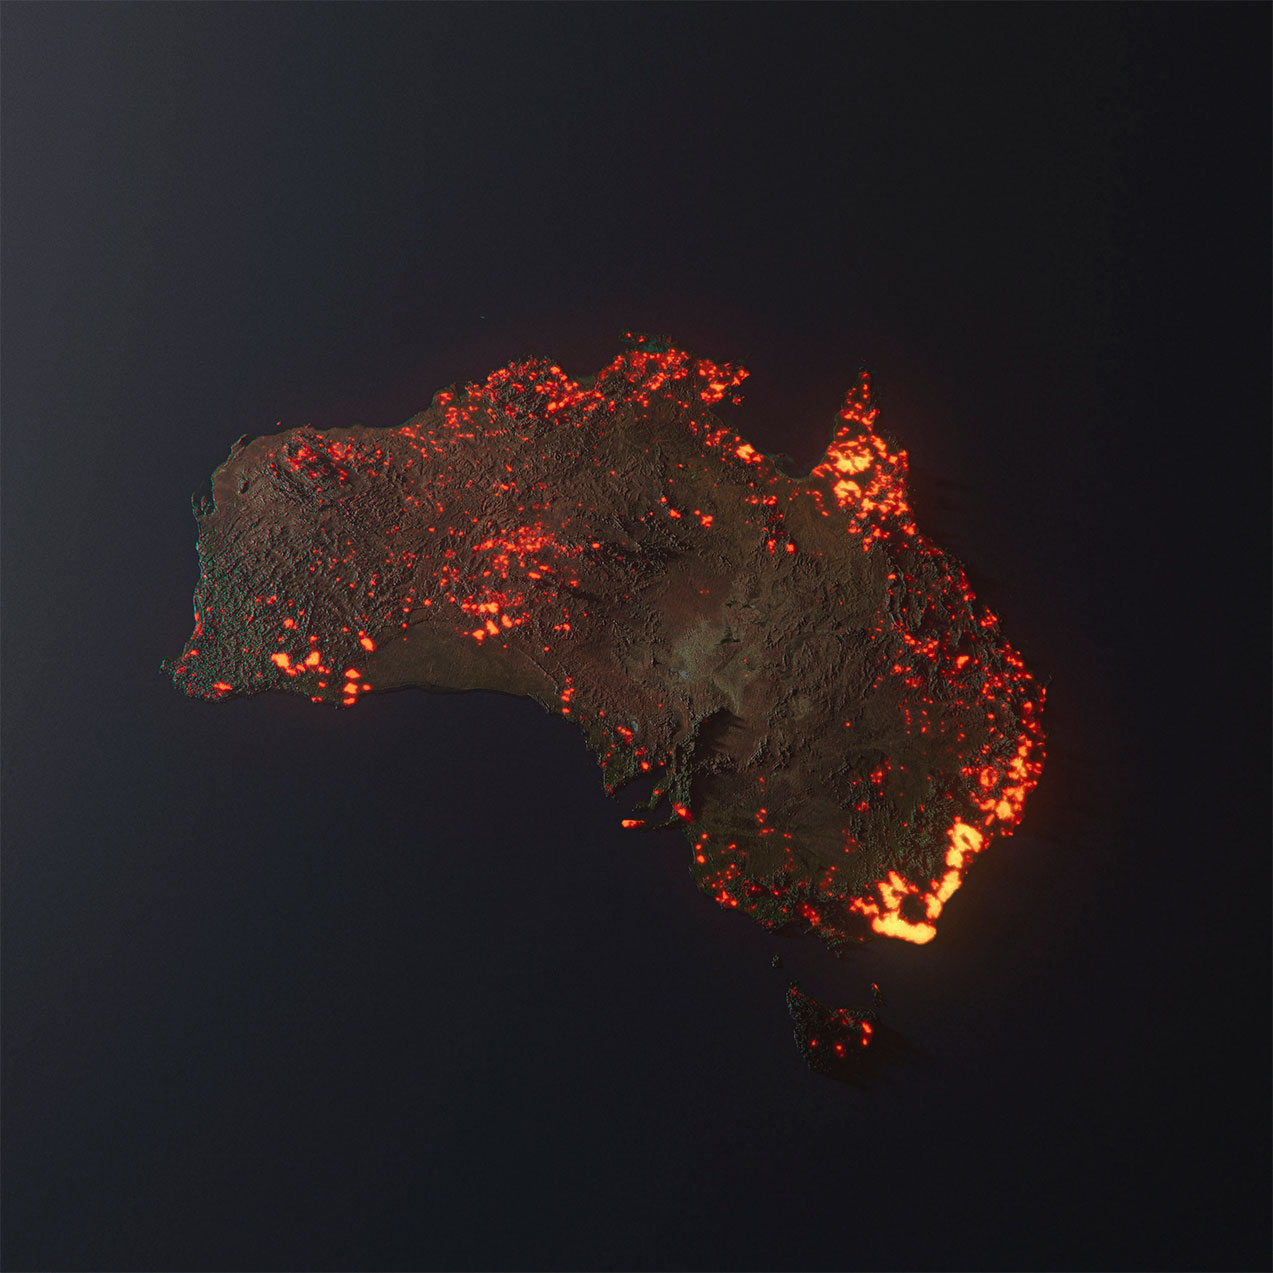 Anthony HEARSEY 'Australia is burning' 2020, digital/3D. Courtesy of the artist. Produced using NASA's FIRMS data.